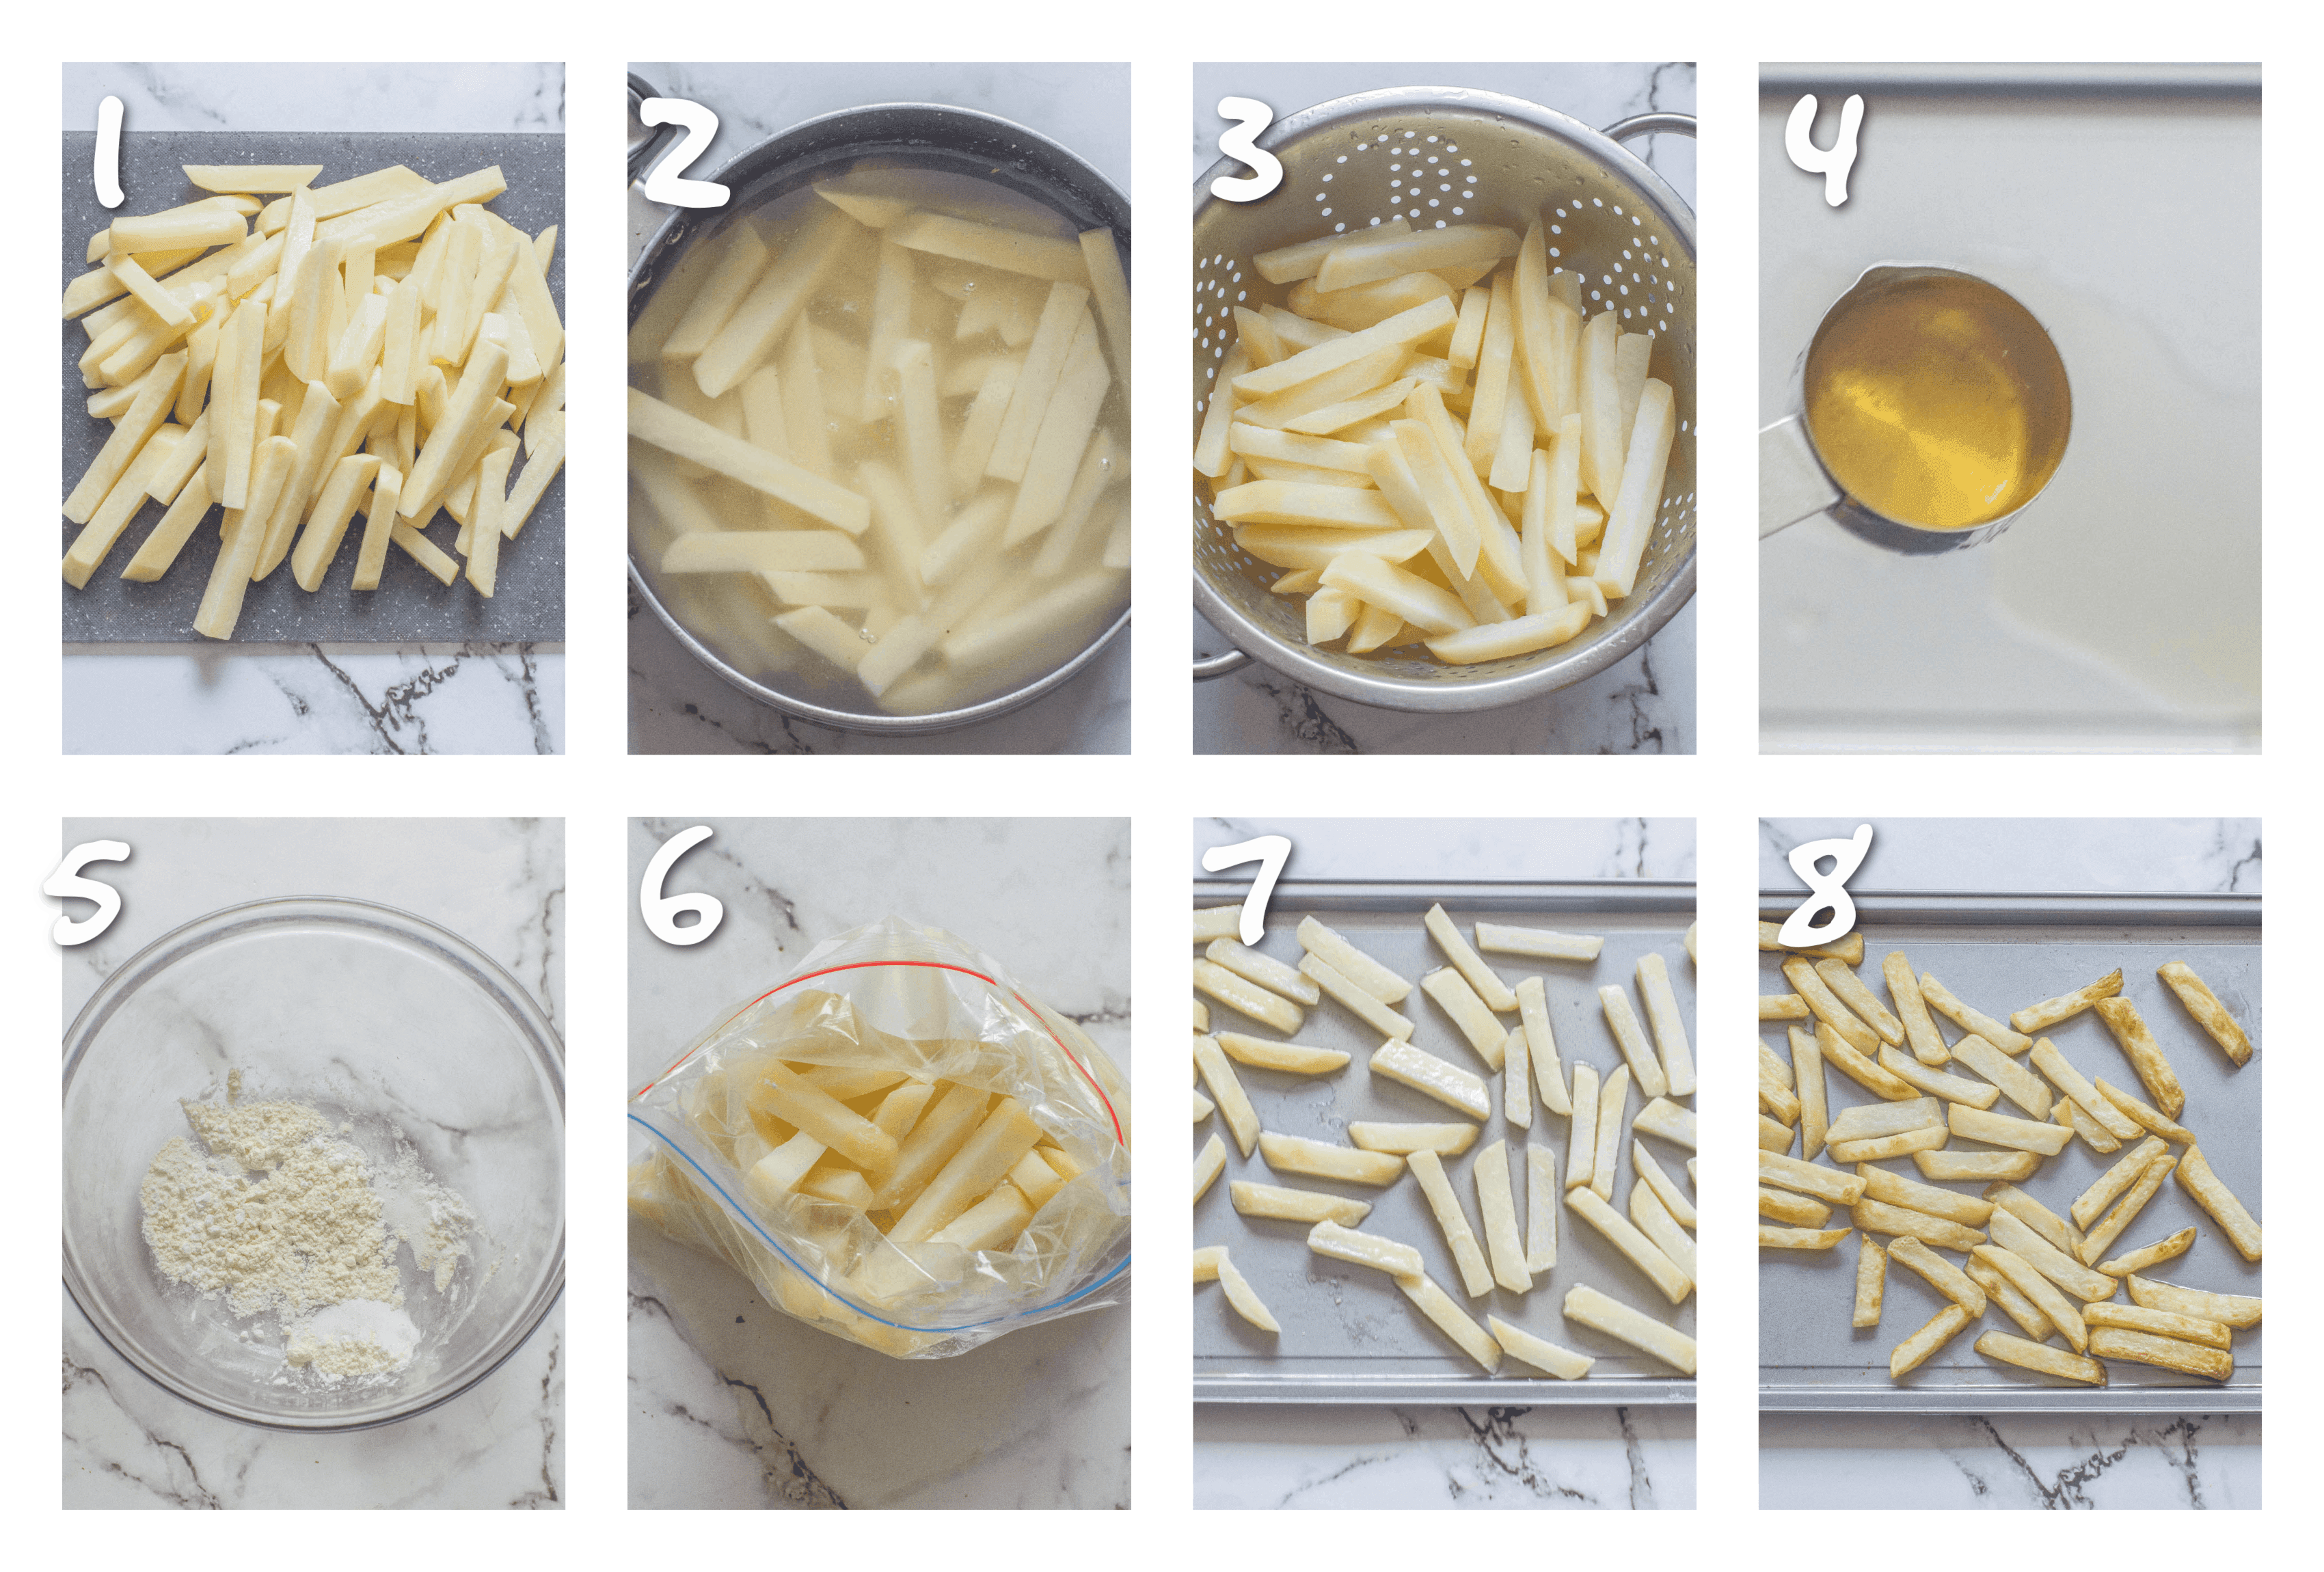 steps1-8 blanching and oven roasting the chips